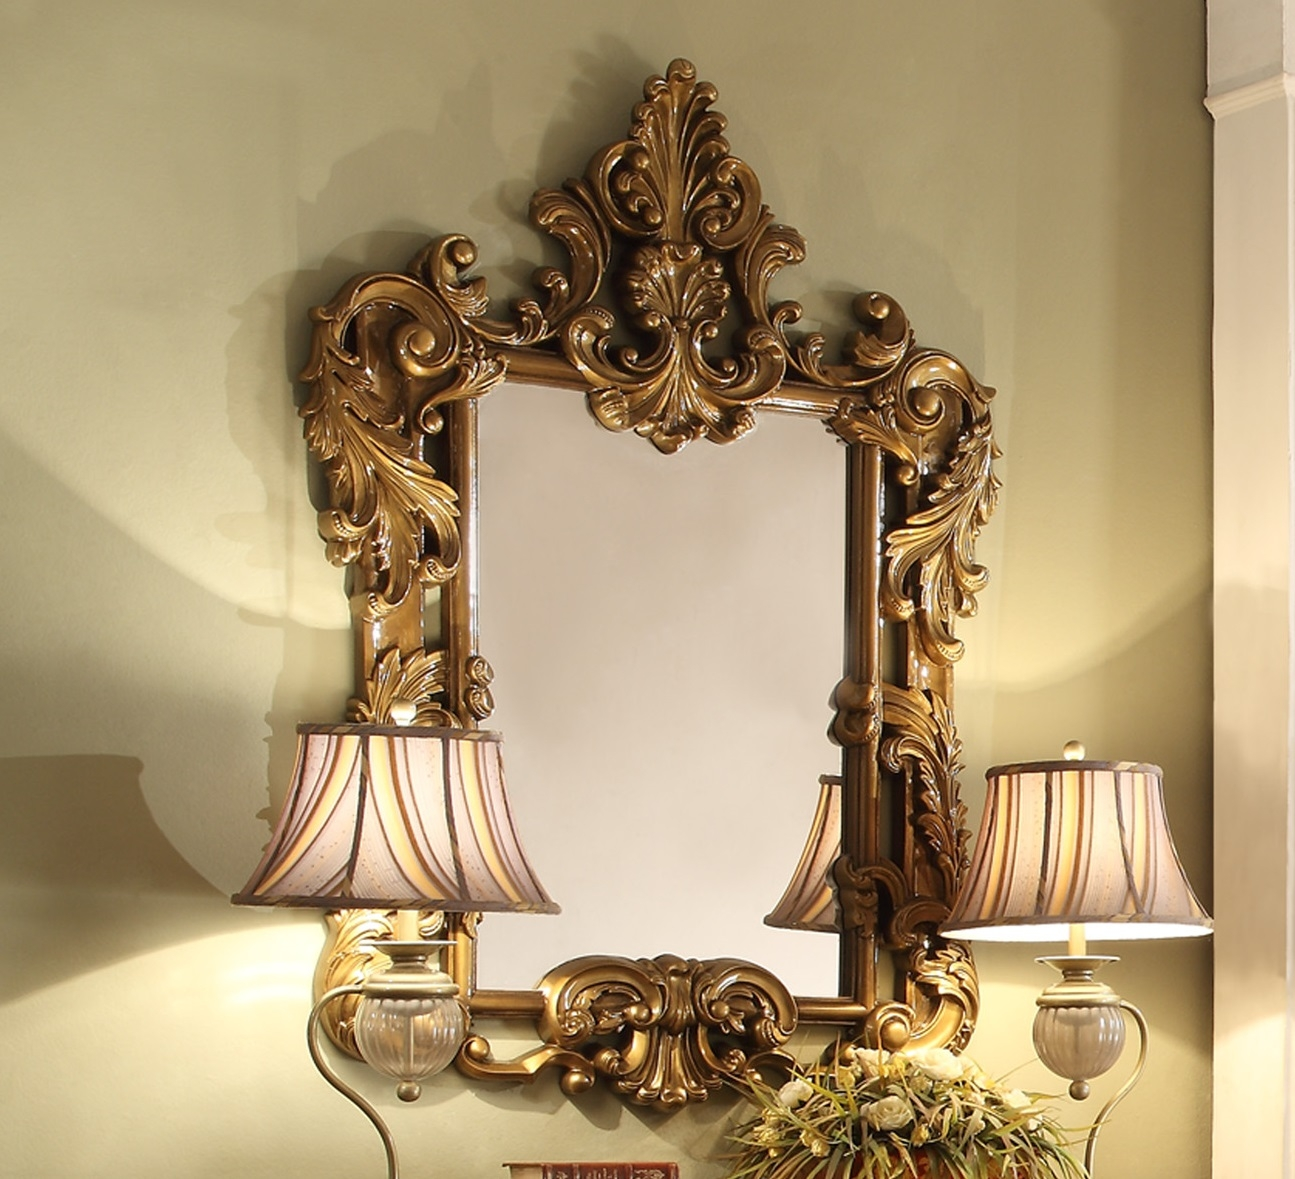 Homey Design Hd 8008 Victorian Palace Mirror Intended For Victorian Mirrors For Sale (Image 8 of 15)